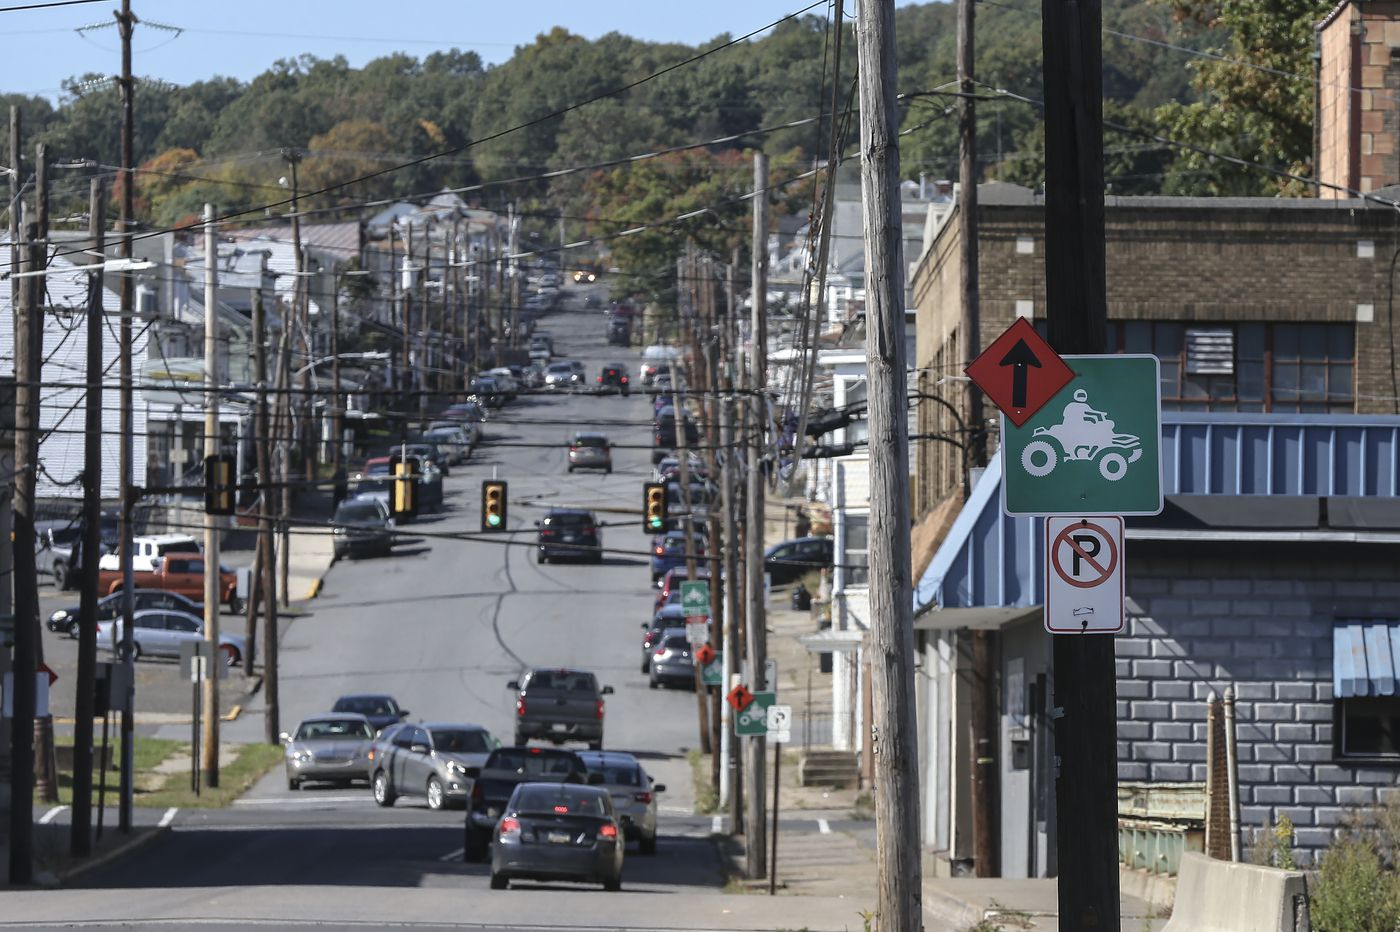 Dirt bikes and ATVs on city streets help revitalize a former Pennsylvania coal town